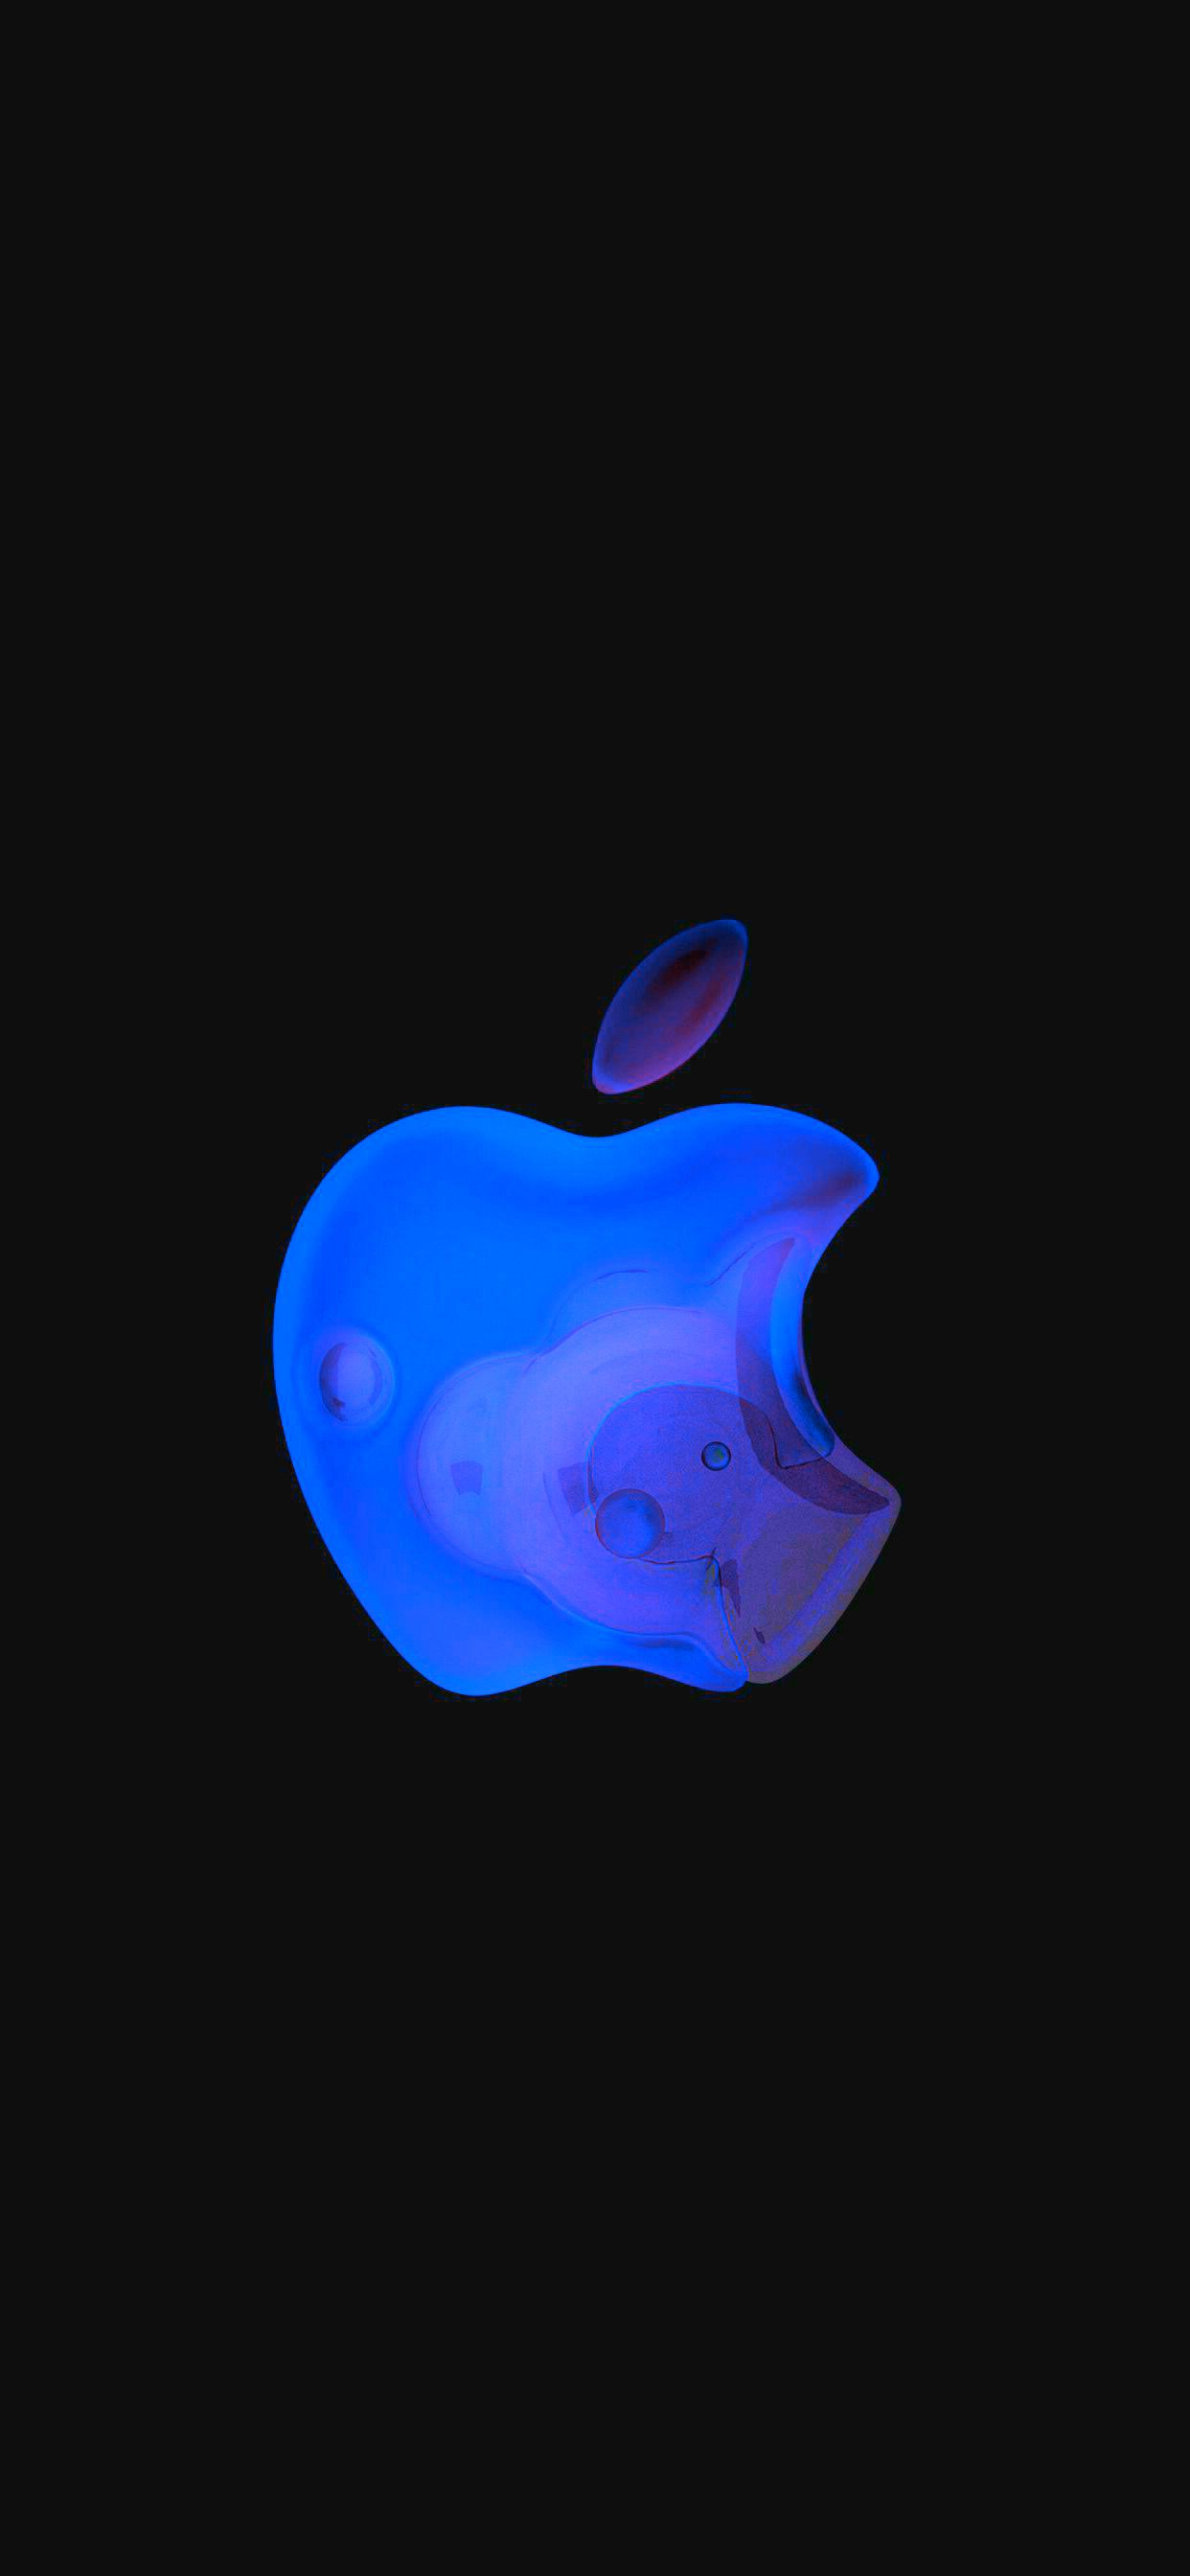 Applelogo Appleiphone Appleipad Ios13 Iphonewallpaper Apple Logo Wallpaper Apple Logo Design Apple Wallpaper Iphone